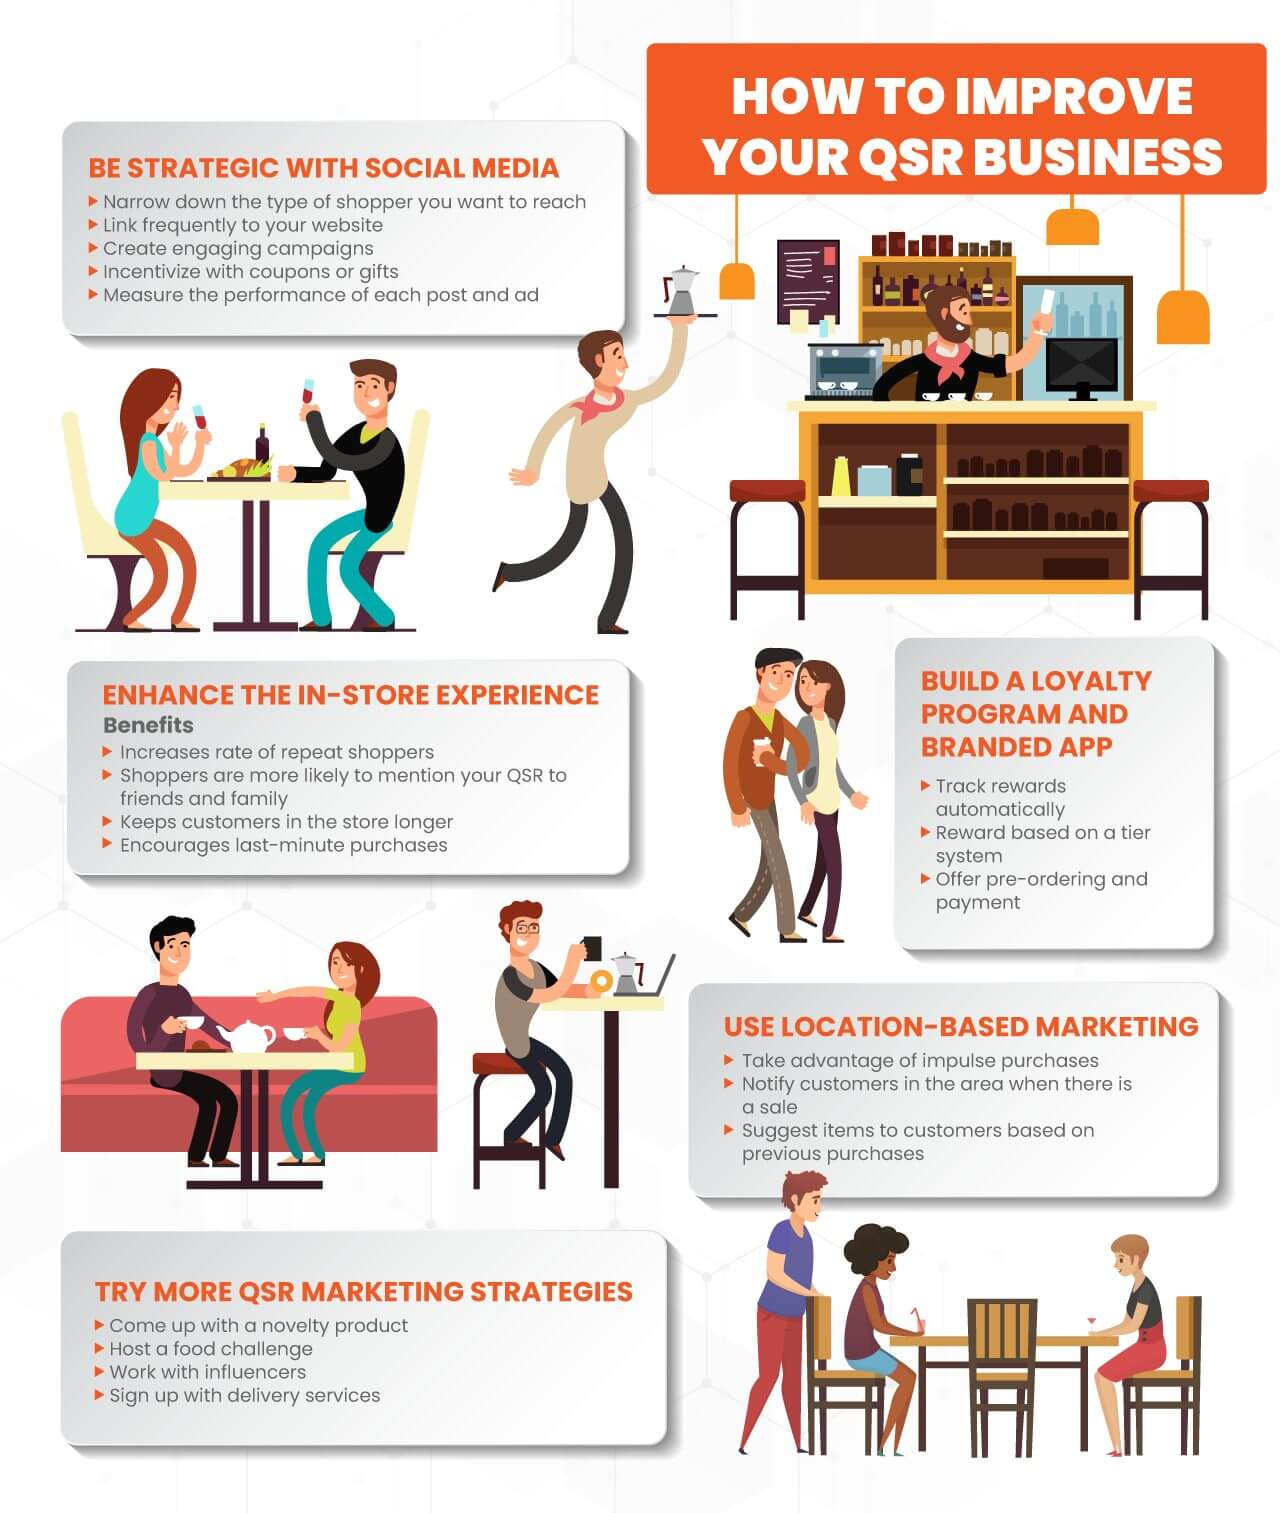 Infographic showing tips on how to improve qsr business with illustrations of a quick serve restaurant